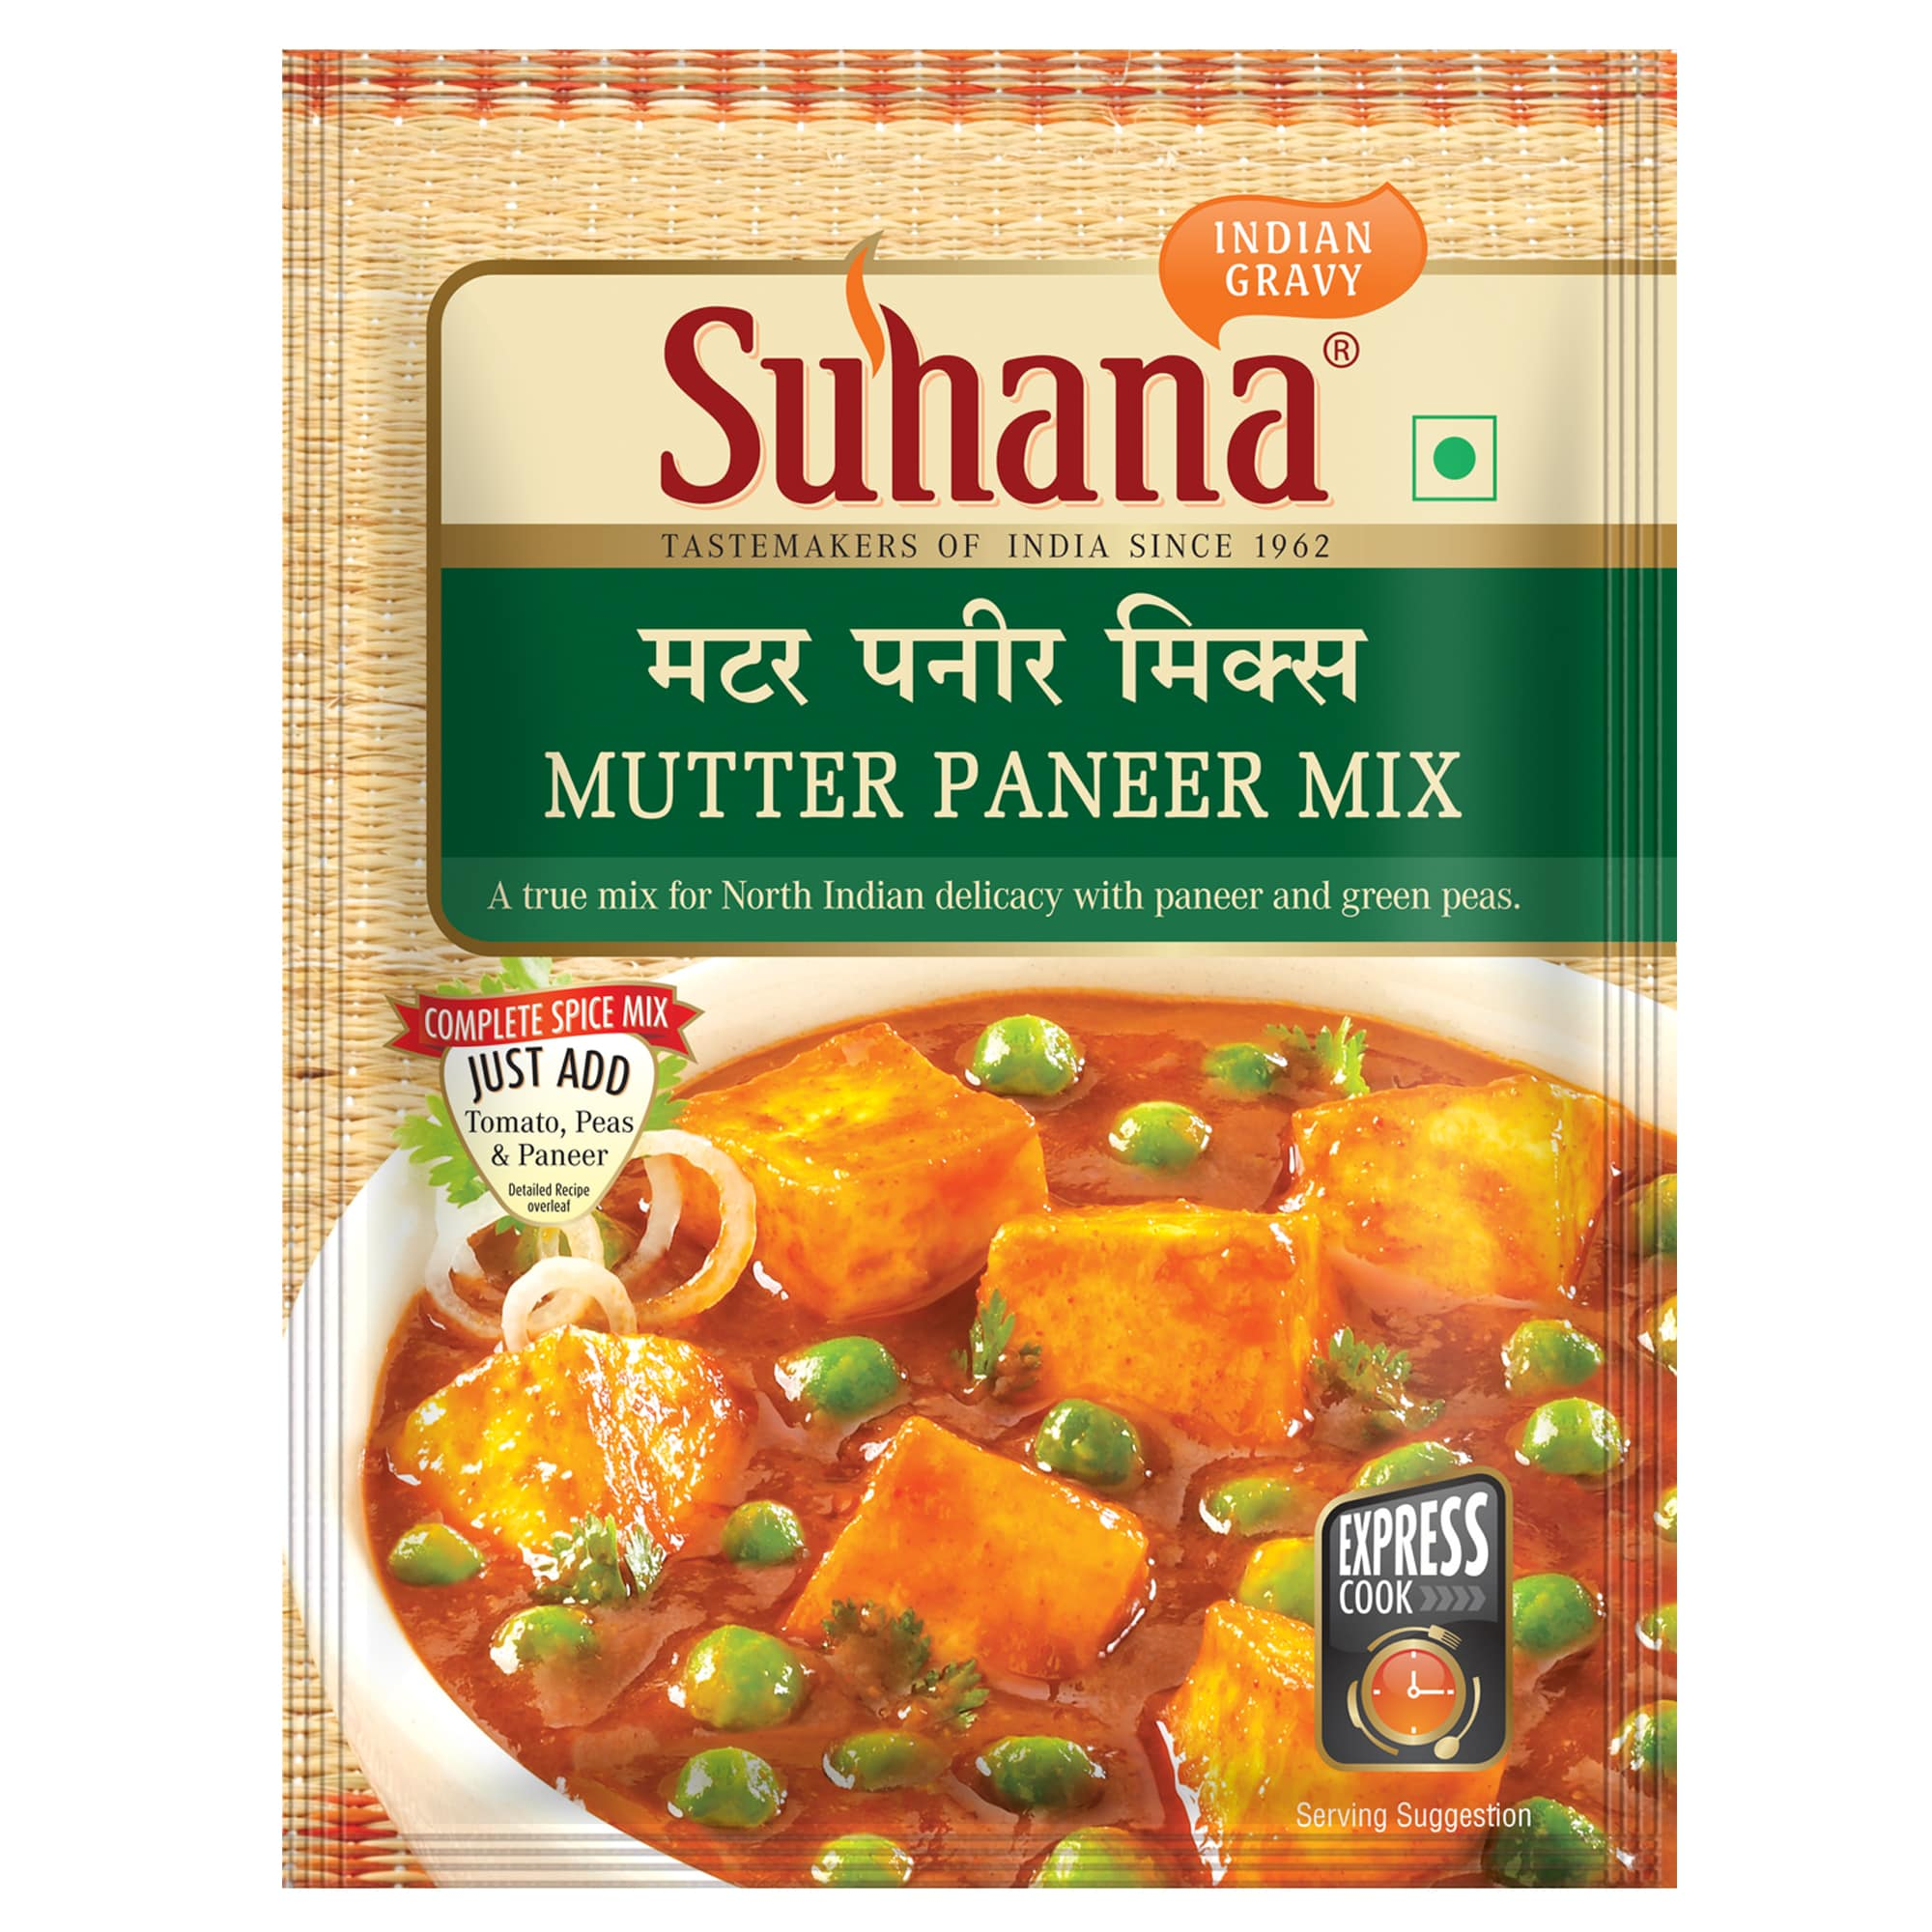 Suhana Mutter Paneer Spice Mix 50g Pouch